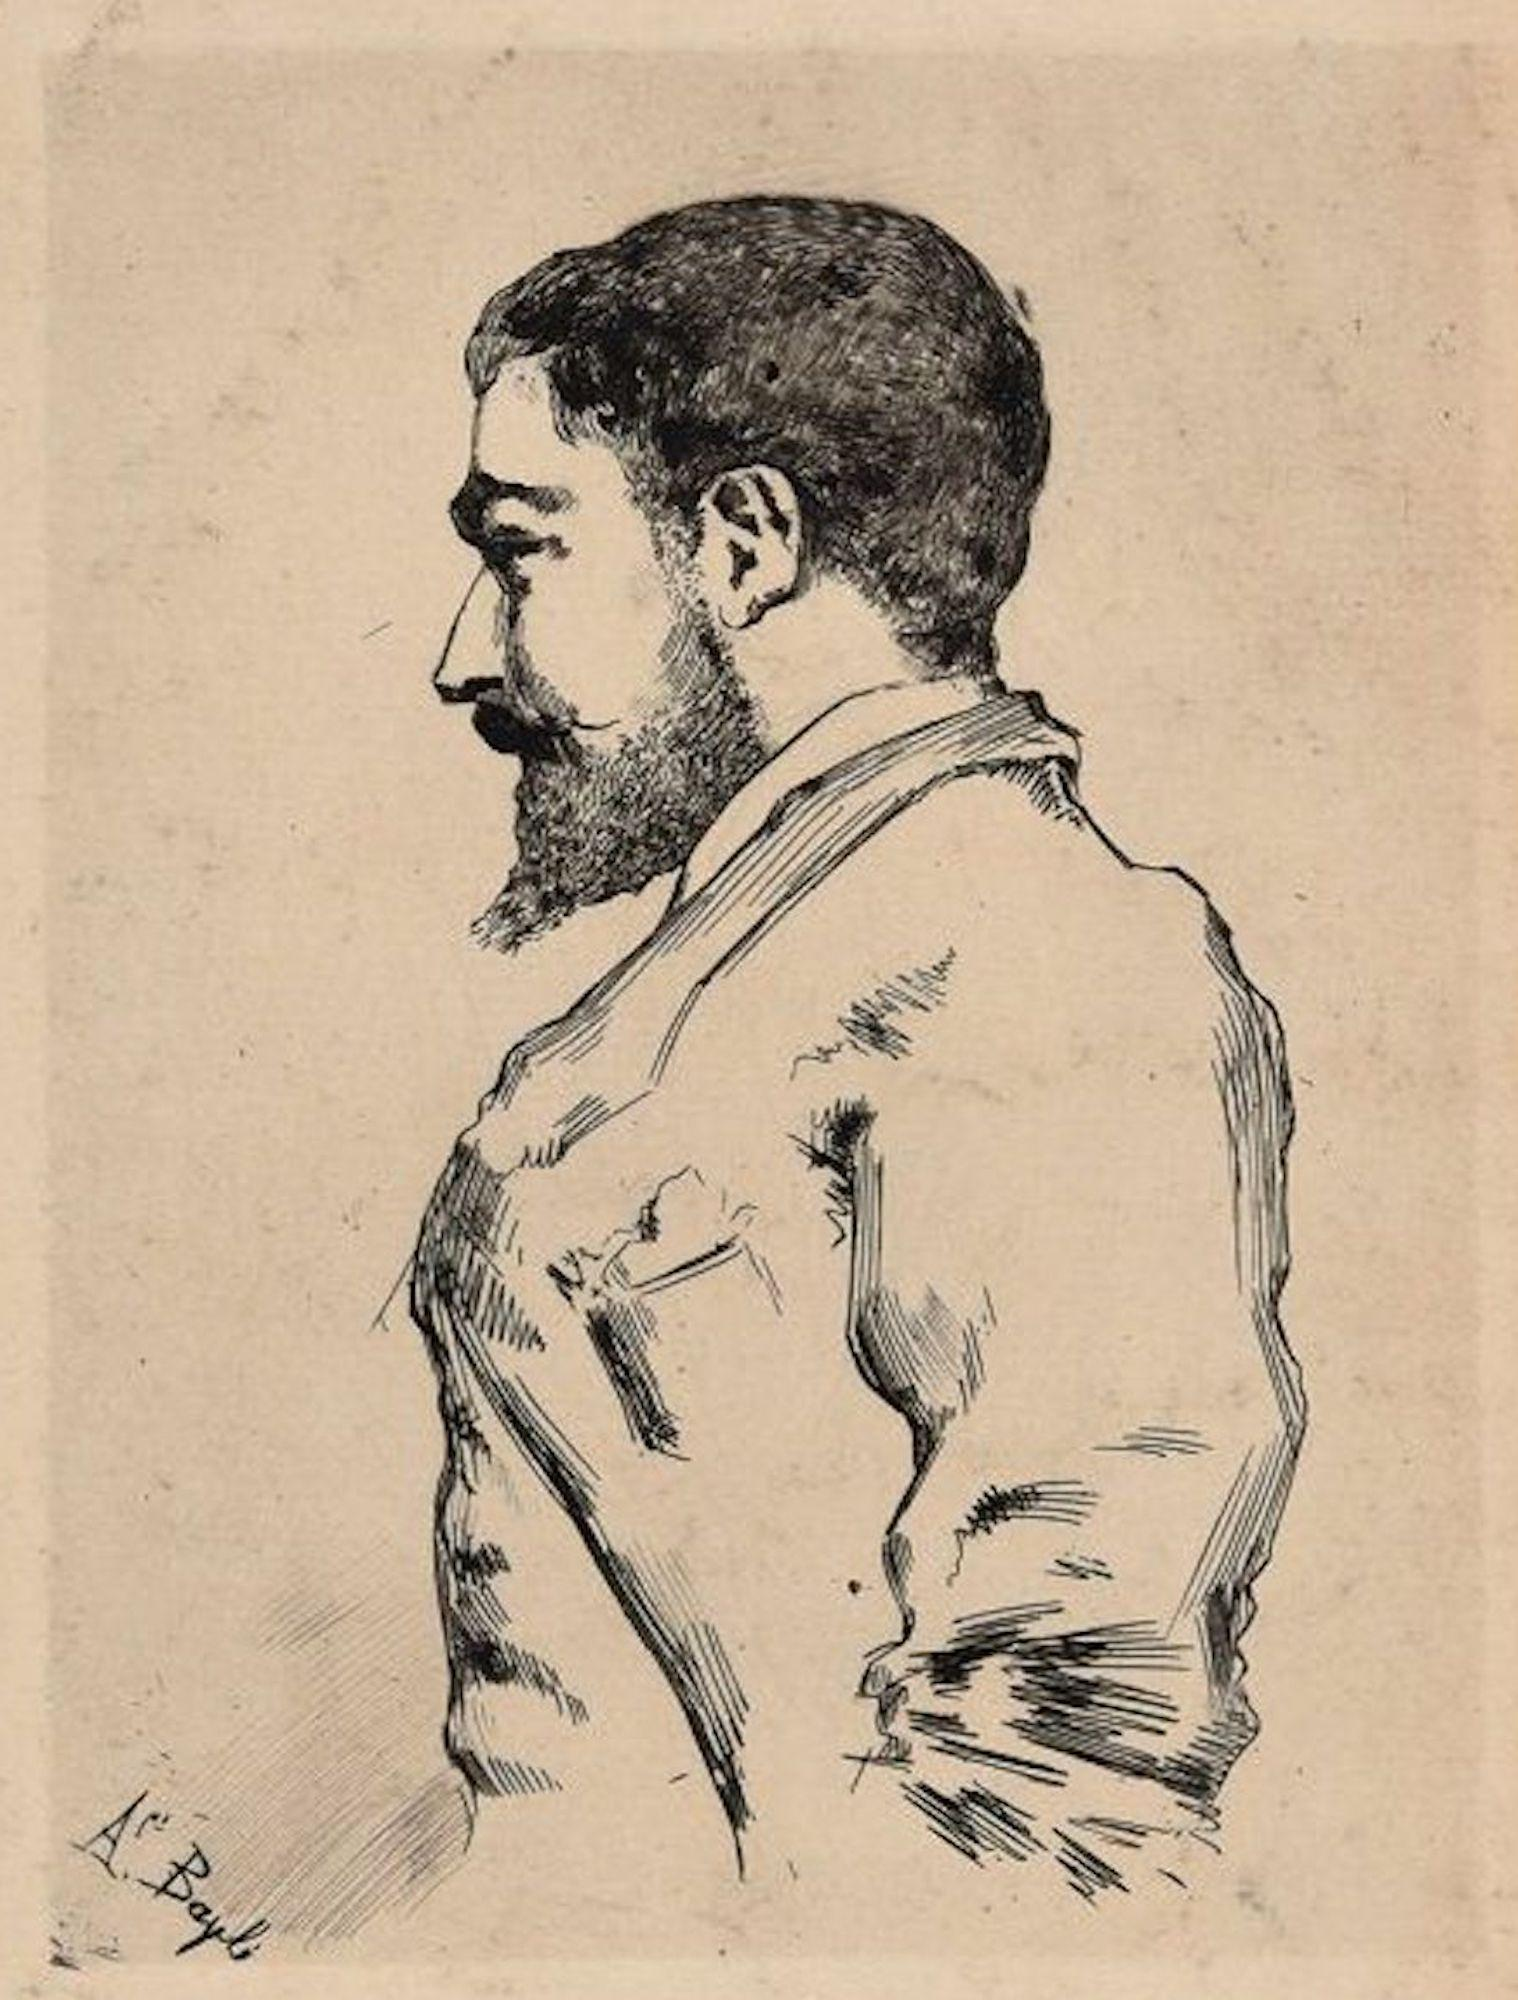 Male Portrait - Original Etching by French Artist End of 1800